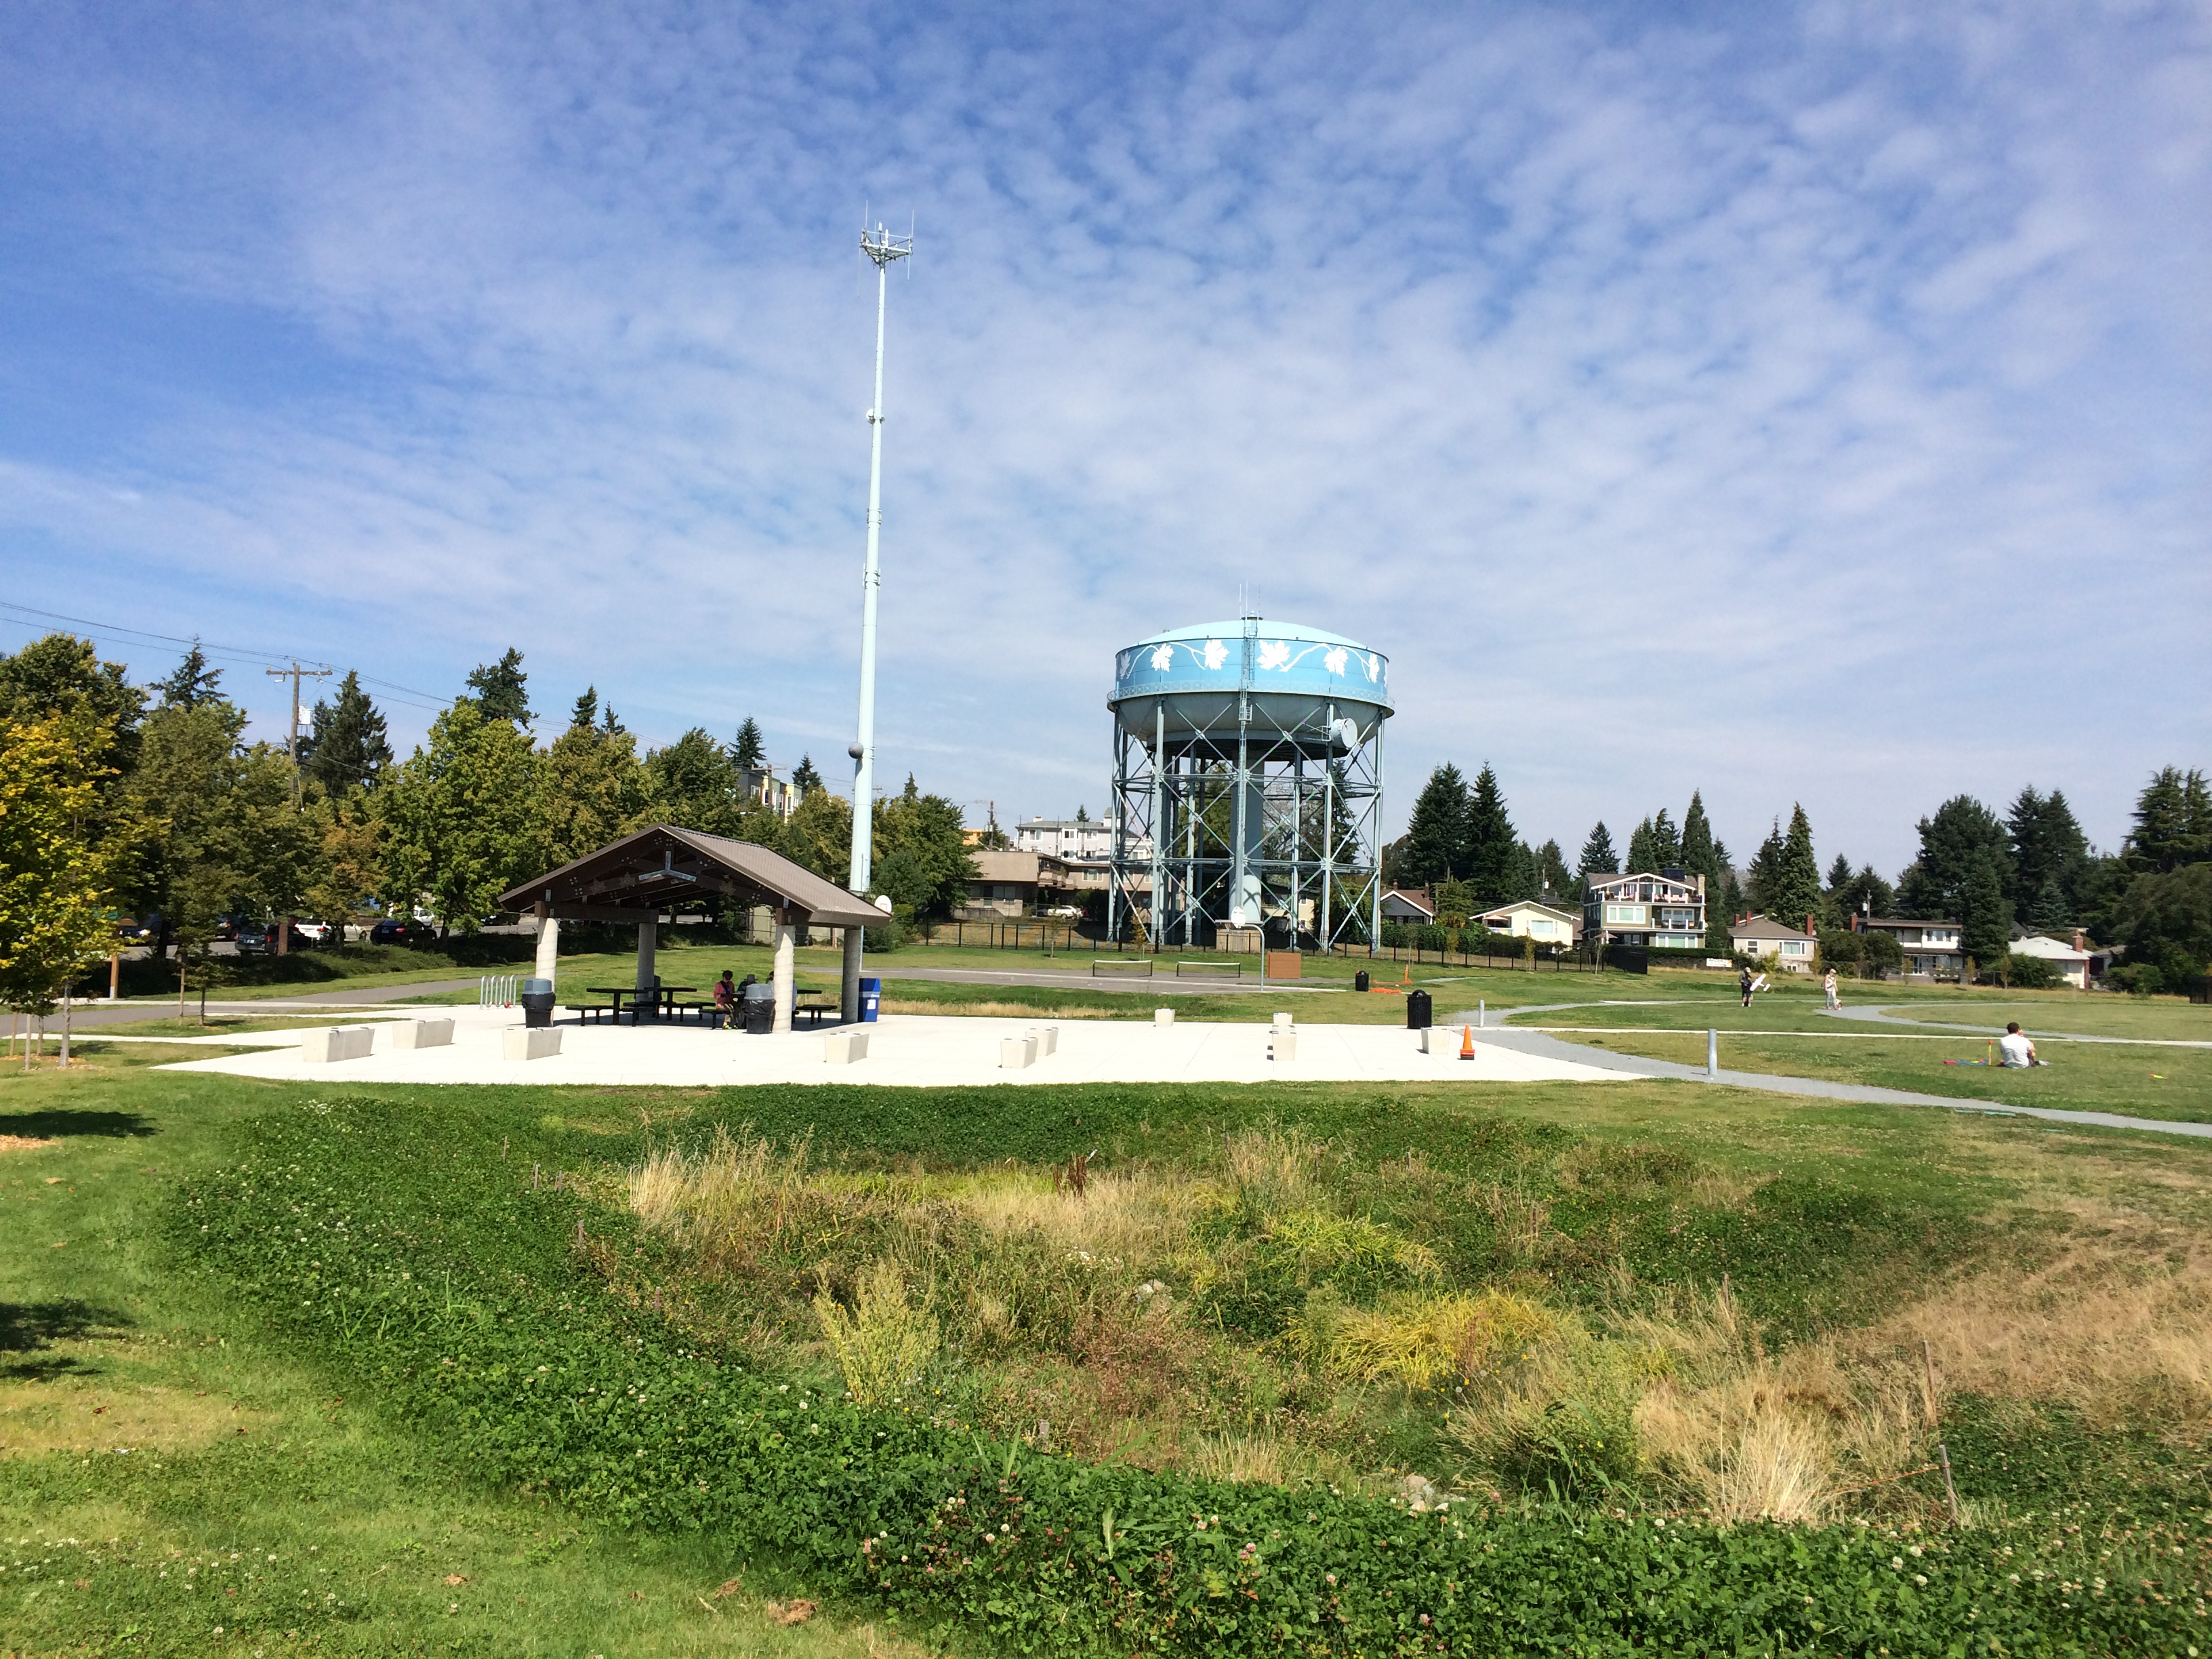 Mapleleaf – Reservoir Park